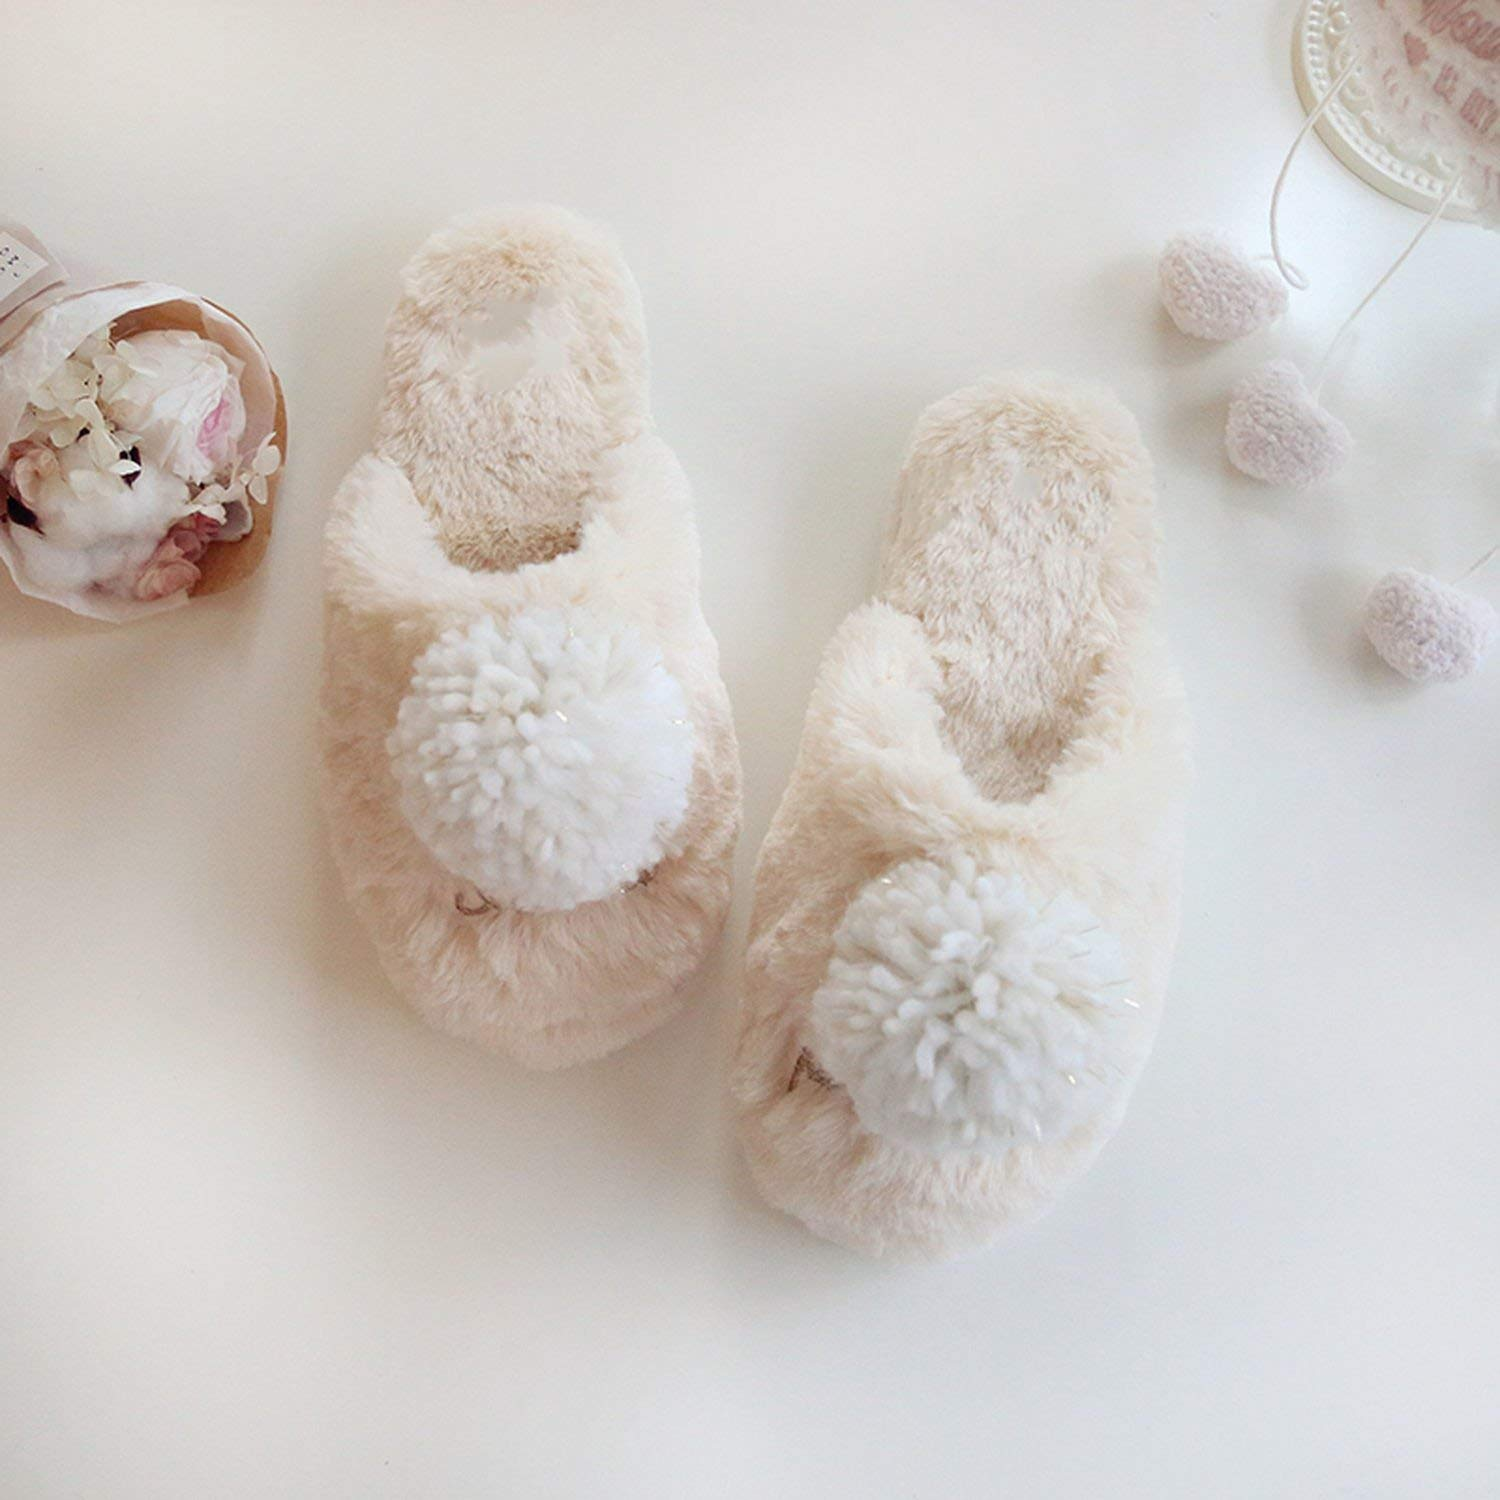 Fantastic-Journey Cute Ball Winter Home Slippers for Indoor Bedroom House Soft Bottom Cotton Warm Adult Guests Flats